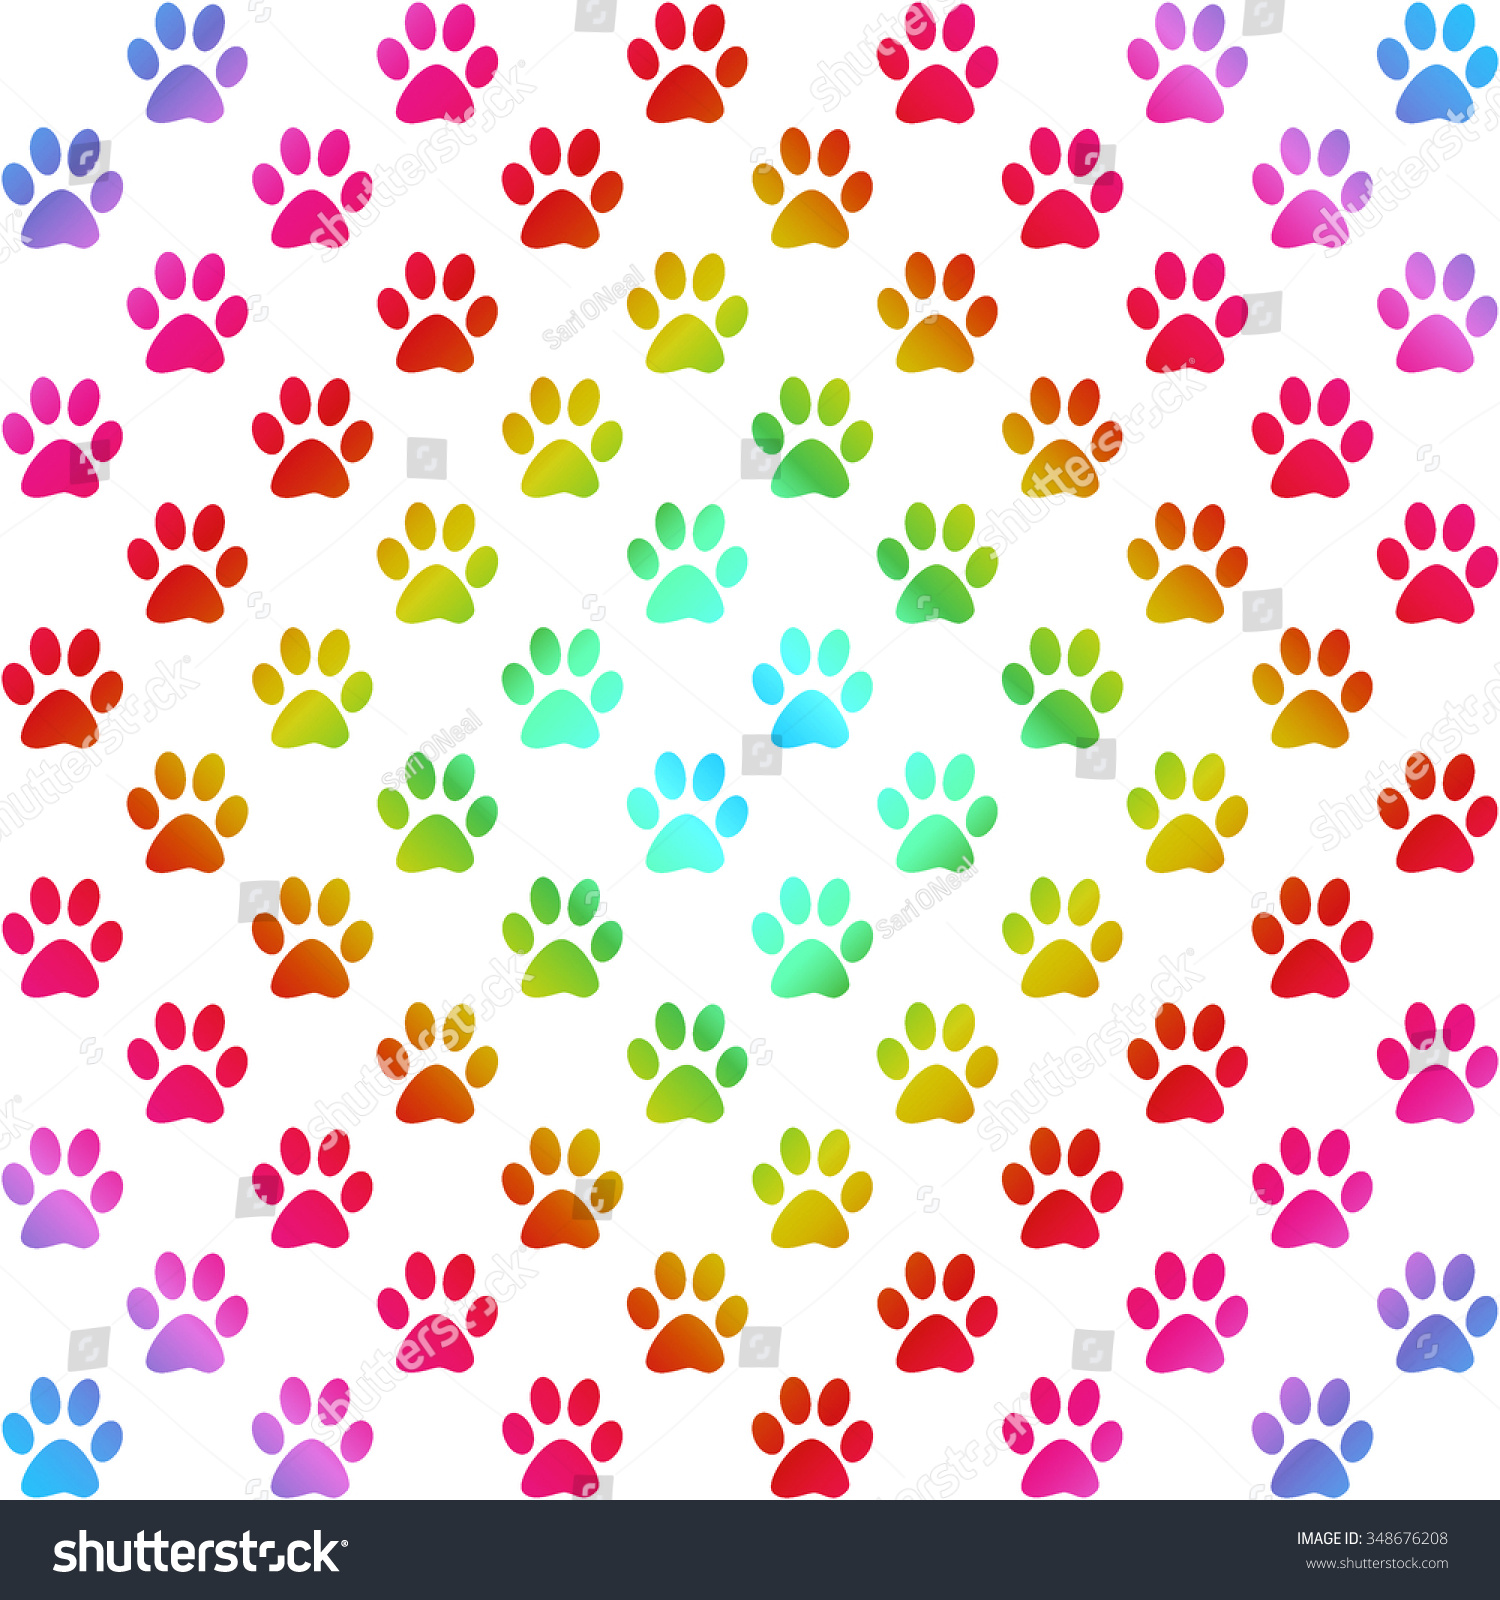 Paw Prints Gradient Colors Diamond Shape Stock